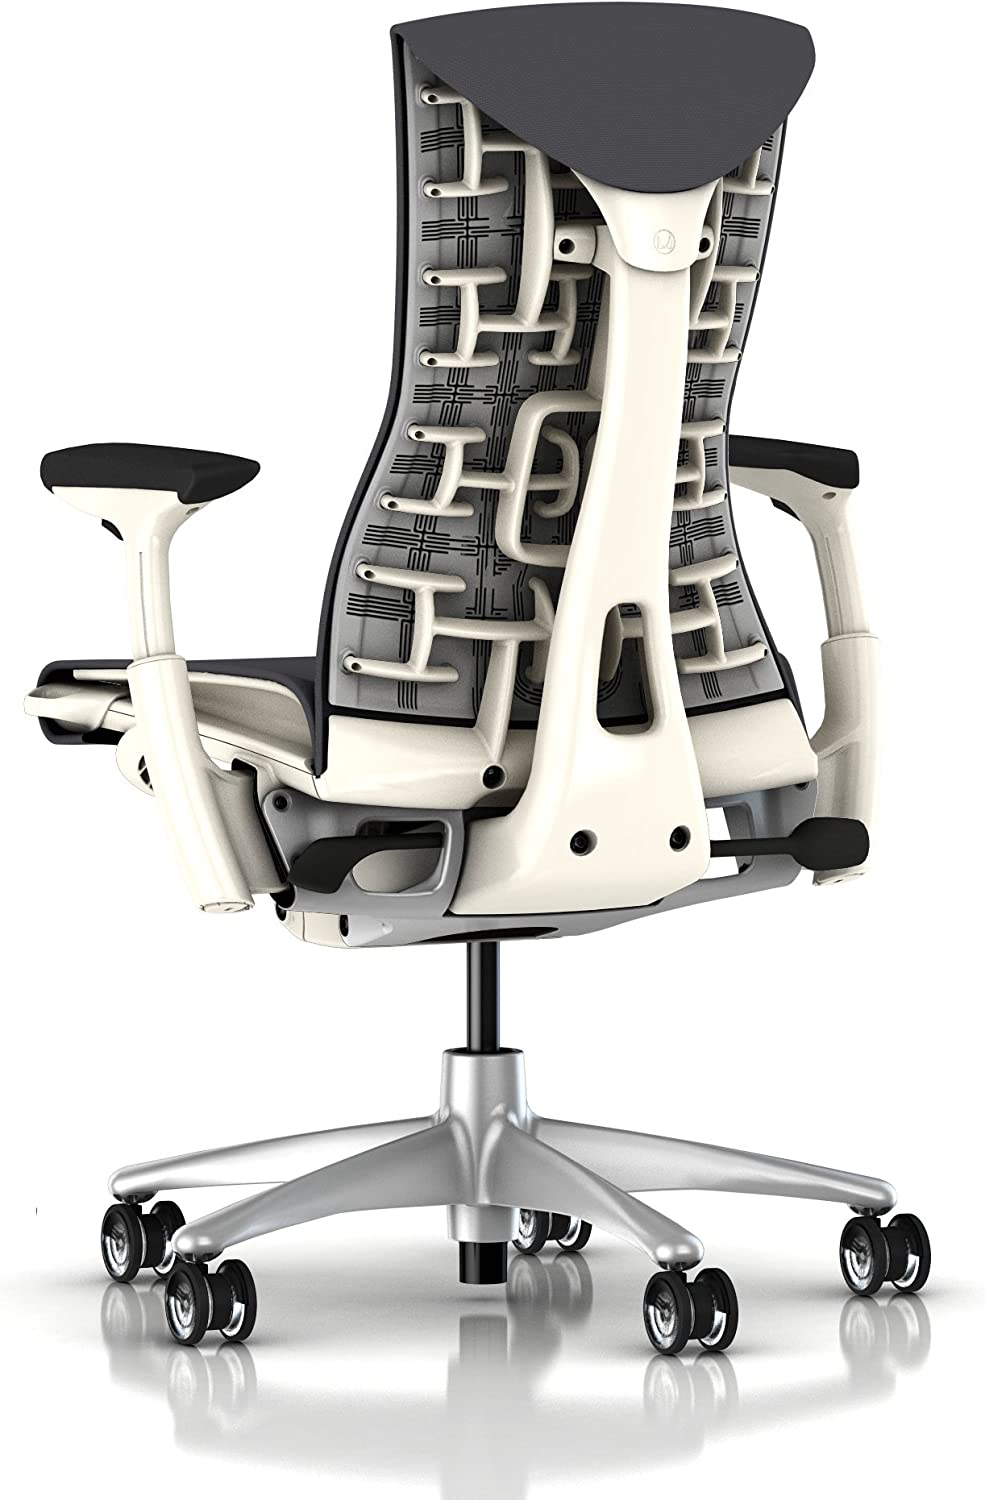 711hiD0EbYL. AC SL1500 - What is The Best Computer Chair For Long Hours Sitting? [Comfortable and Ergonomic] - ChairPicks